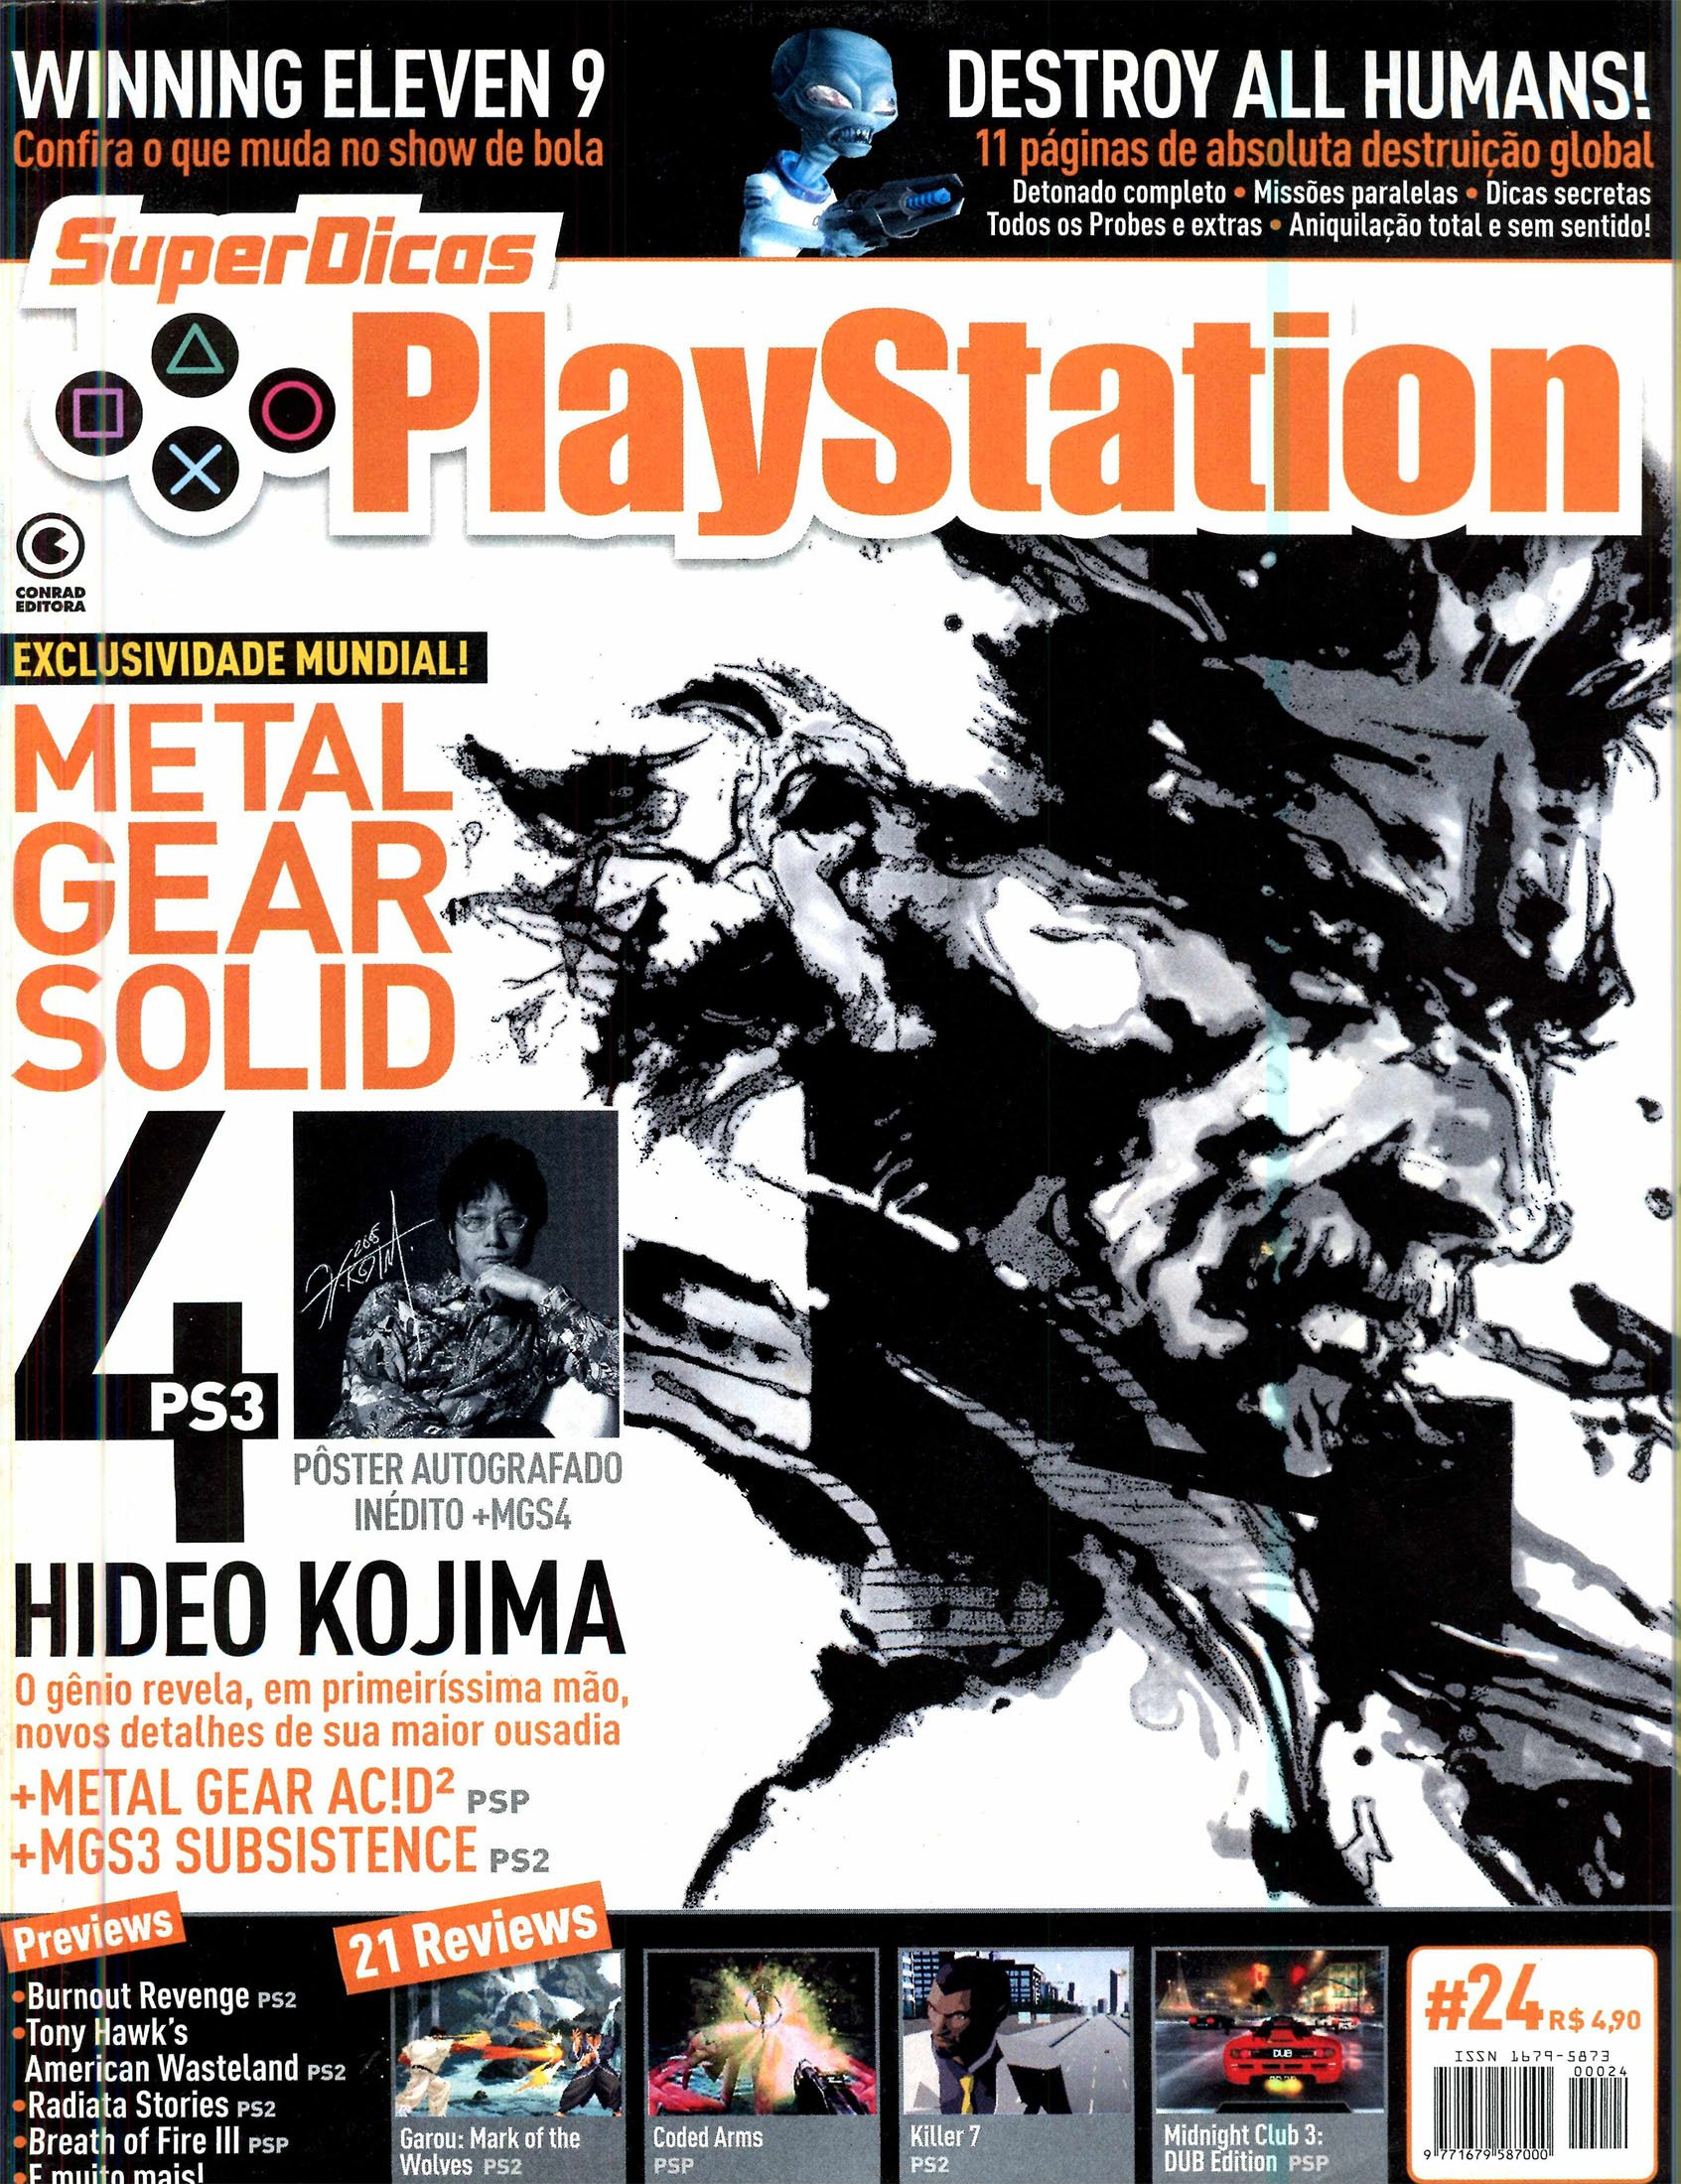 Super Dicas Playstation 24 (August 2005)